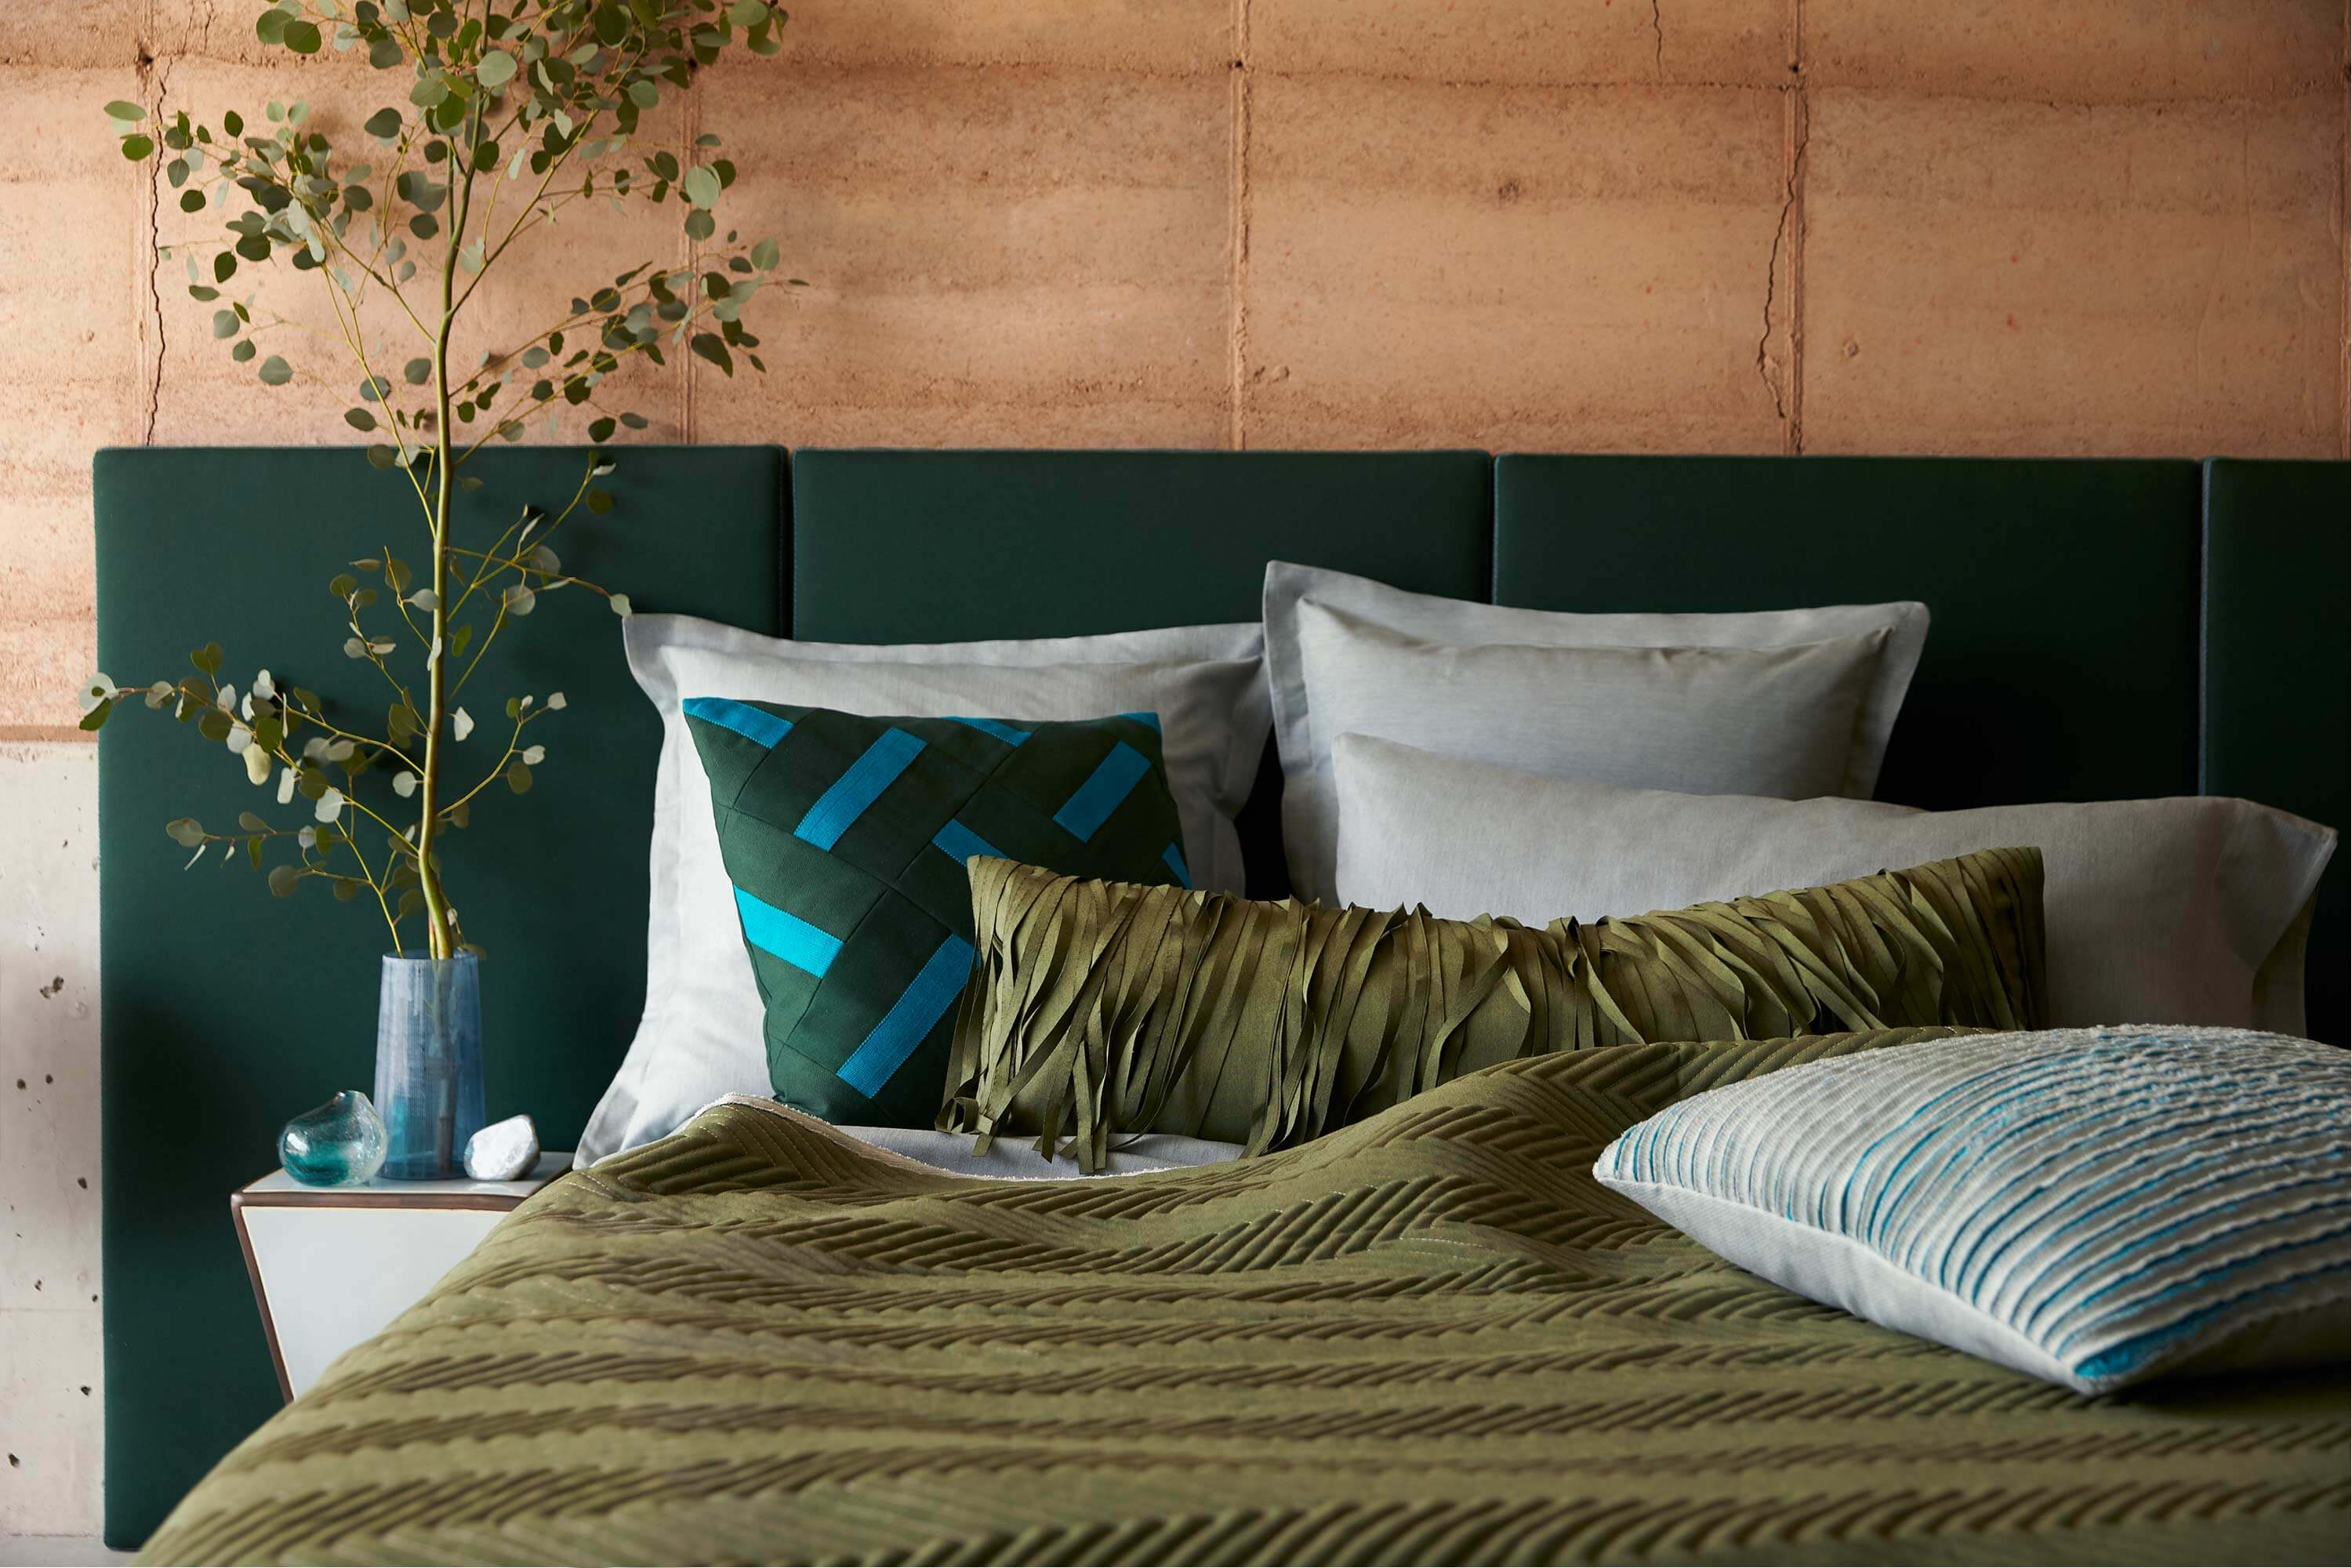 Bedroom with headboard, plillows and coverlet made with green and teal Sunbrella fabrics